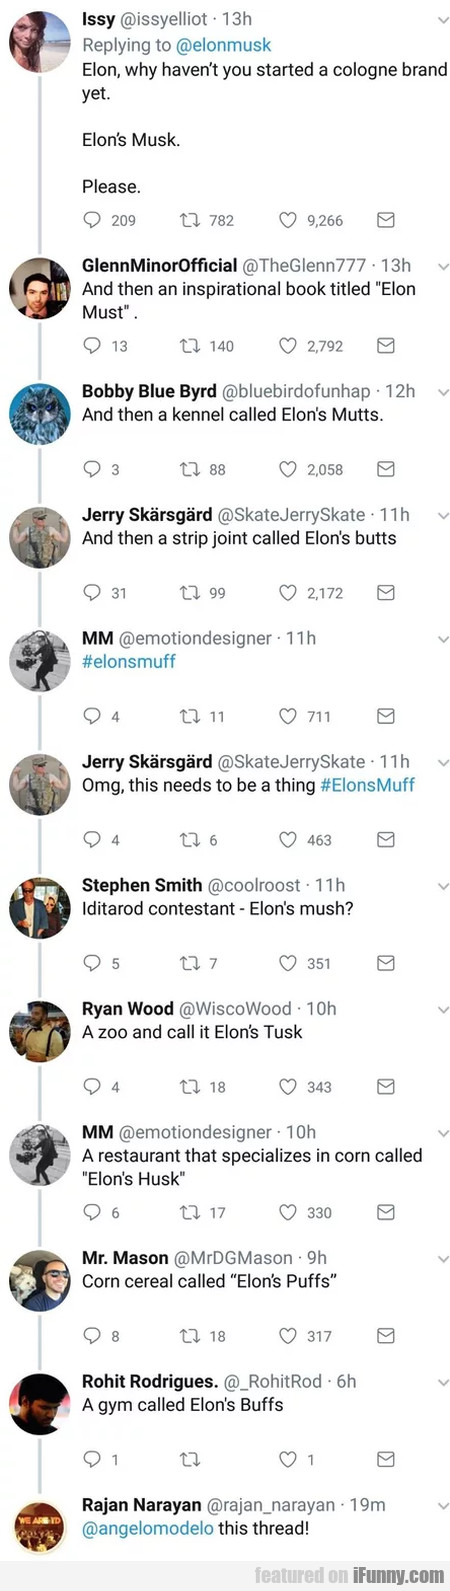 Elon, why haven't you started a cologne brand...